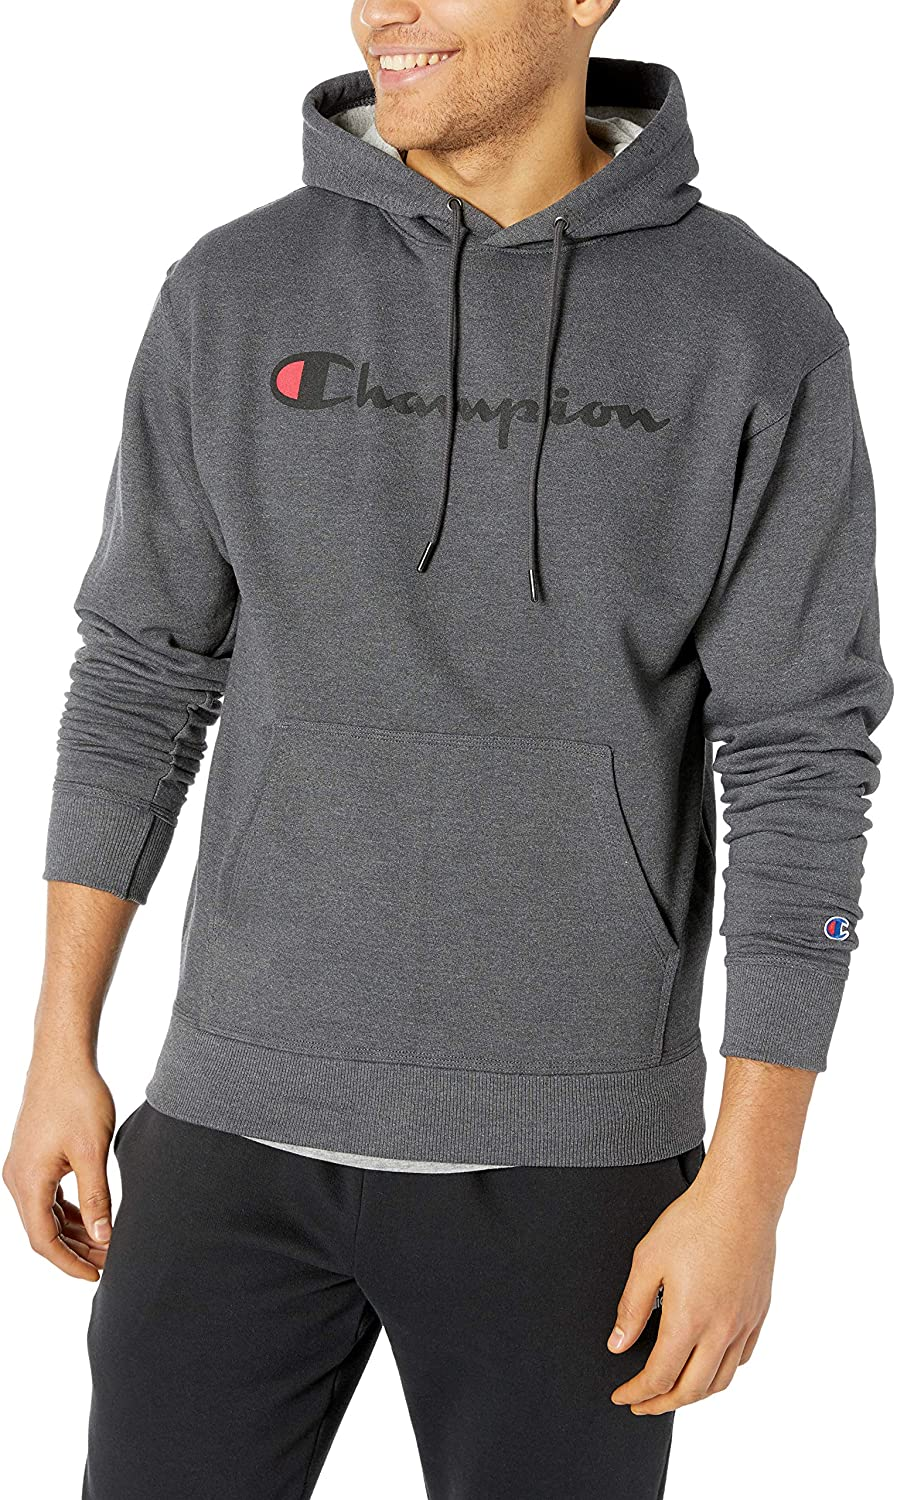 Champion Men's Graphic Powerblend fleece hoodie in grey with large logo